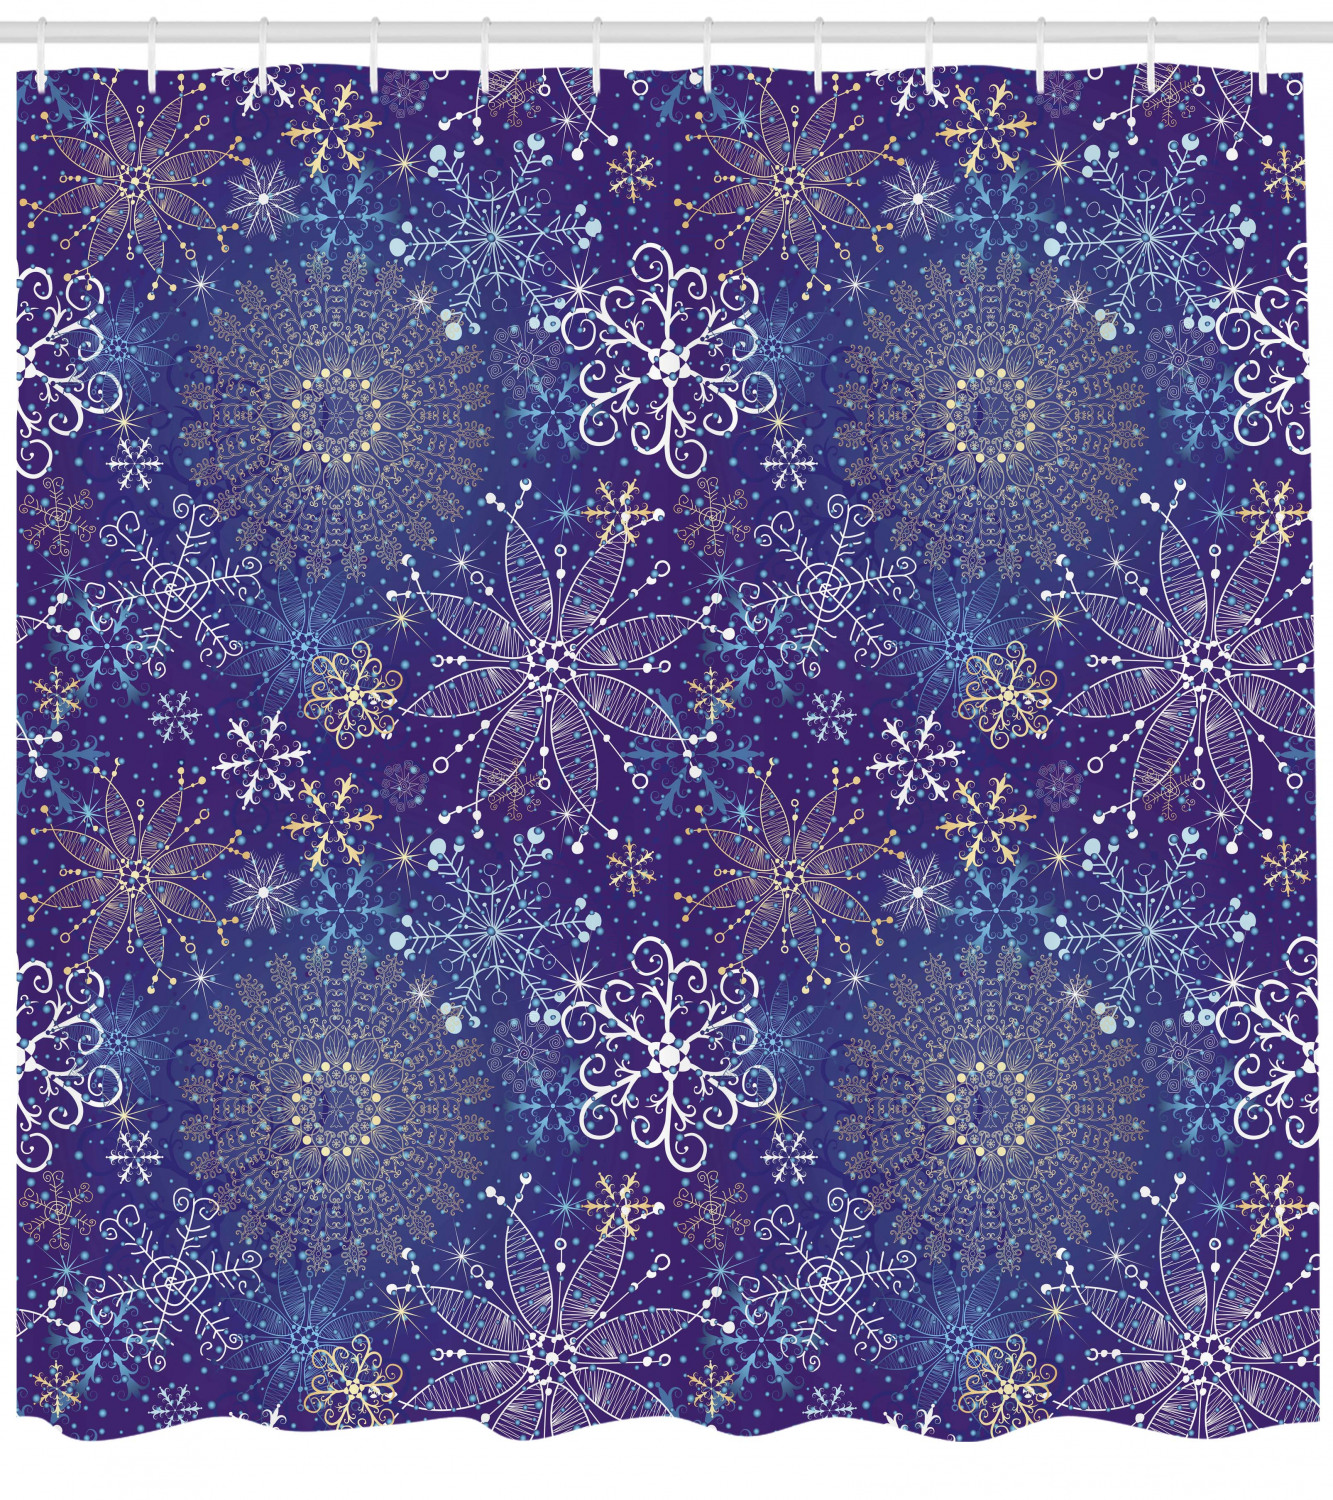 Dark Blue Shower Curtain Christmas Inspired Pattern With Artistic Ornate Curly Snowflakes Mandala Style Fabric Bathroom Set With Hooks 69w X 84l